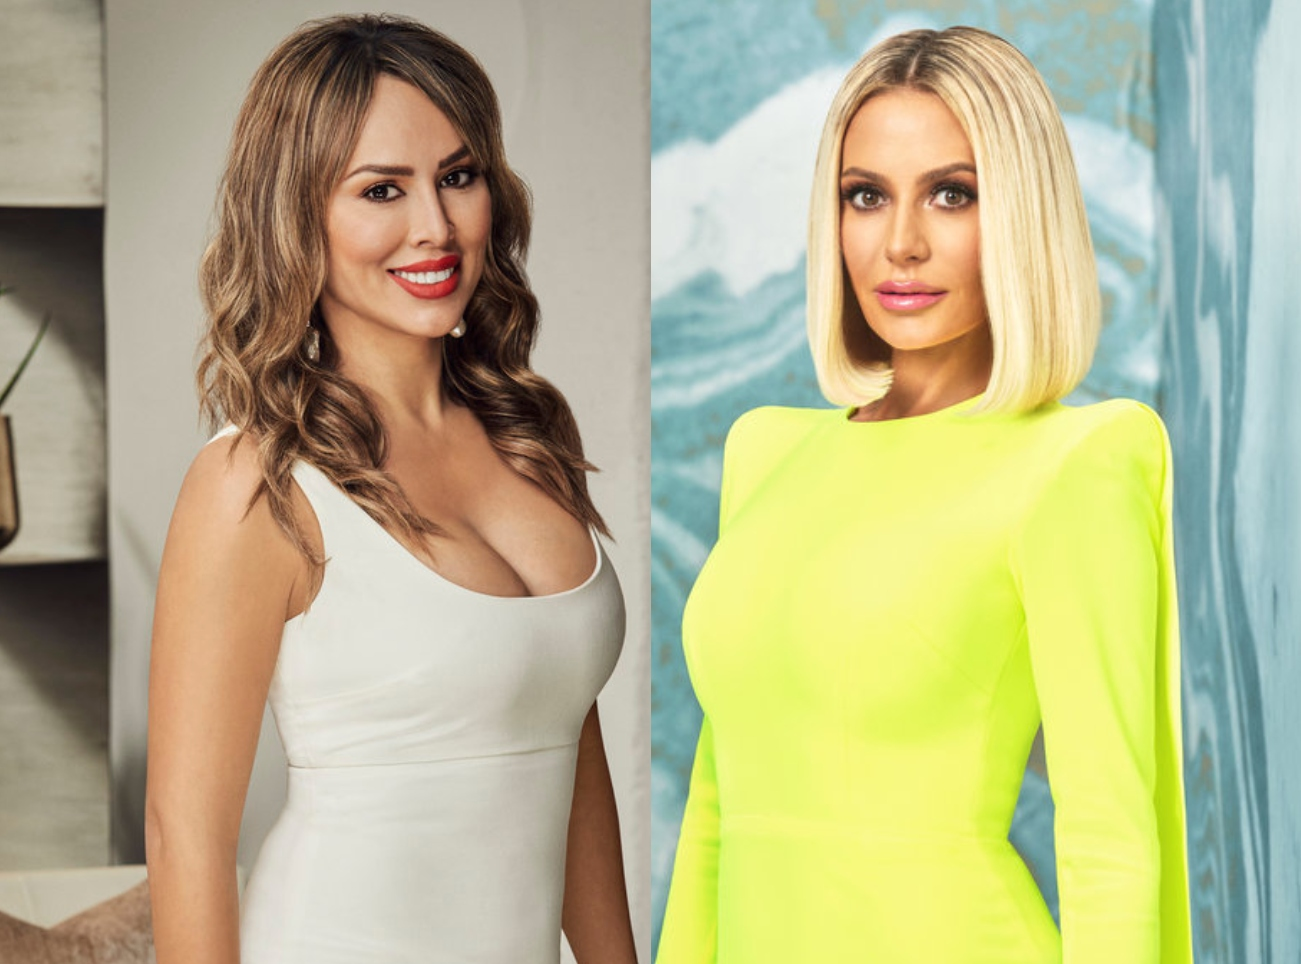 """RHOC Alum Kelly Dodd Shades Dorit Kemsley's Style After RHOBH Star is Called """"Tacky as Hell,"""" Shares Controversial Video Slamming """"Snowflakes"""" as """"Weak"""""""